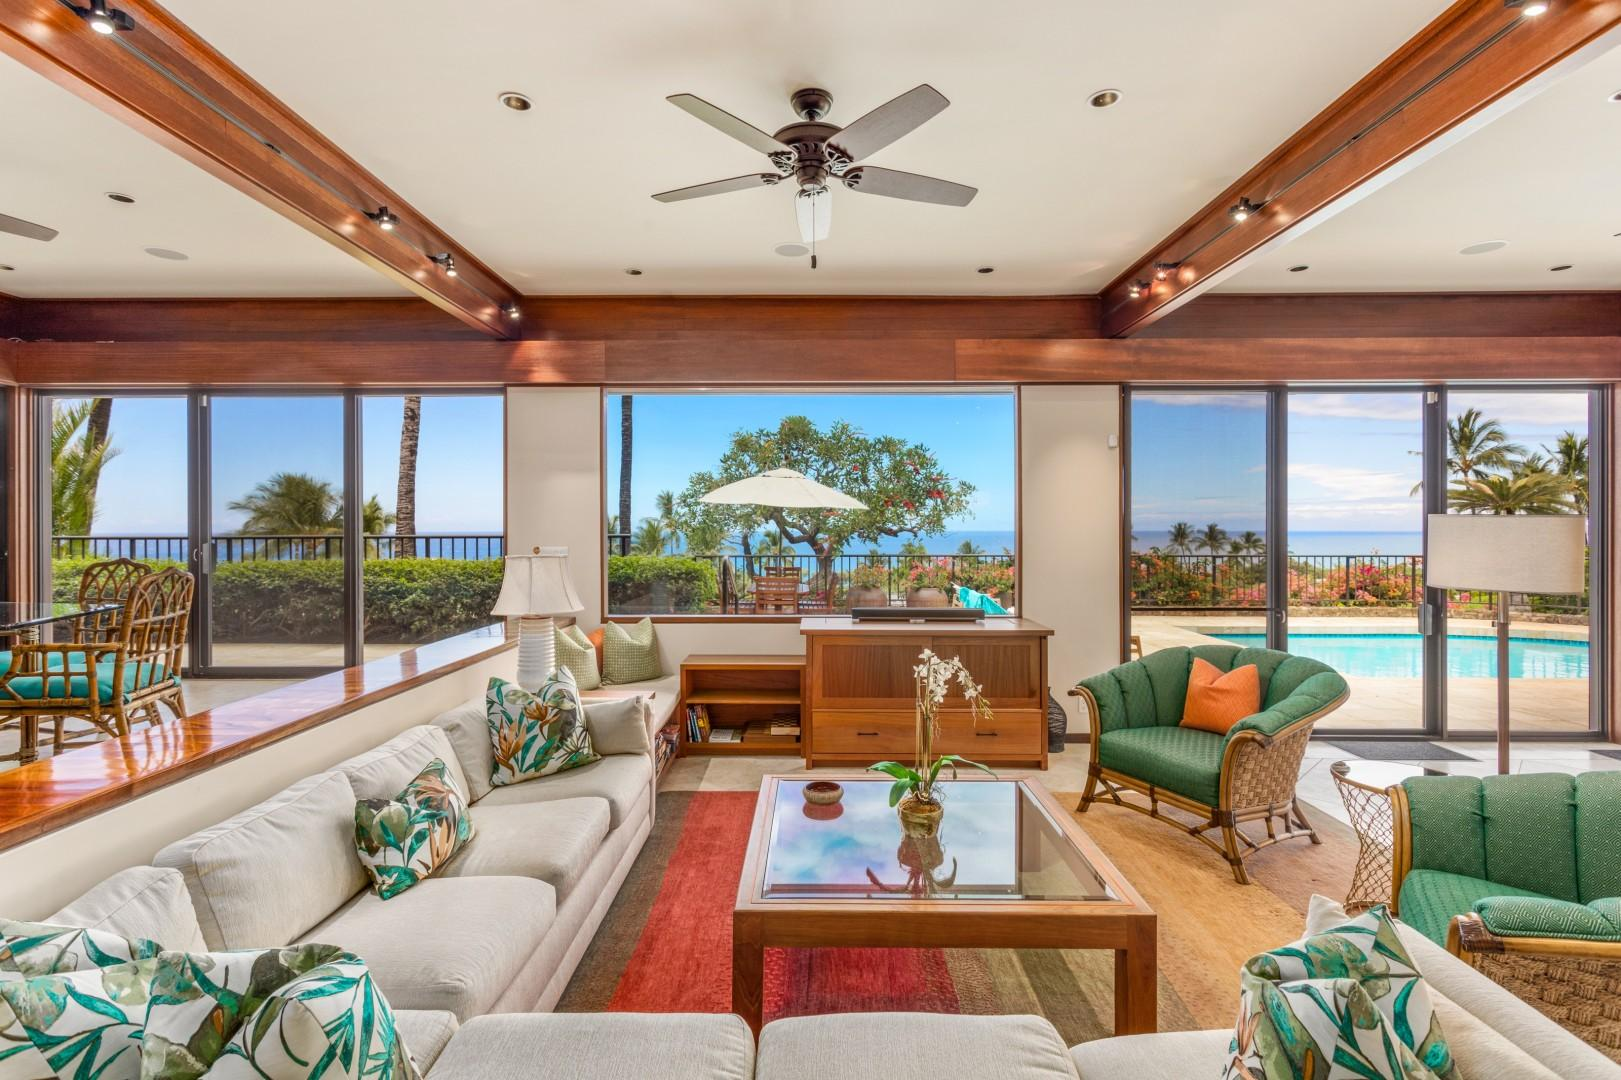 Bask in Ocean & Sunset Views from the Newly Redesigned Living Area. Sliding Glass Doors Open to Pool Deck & Lanai.